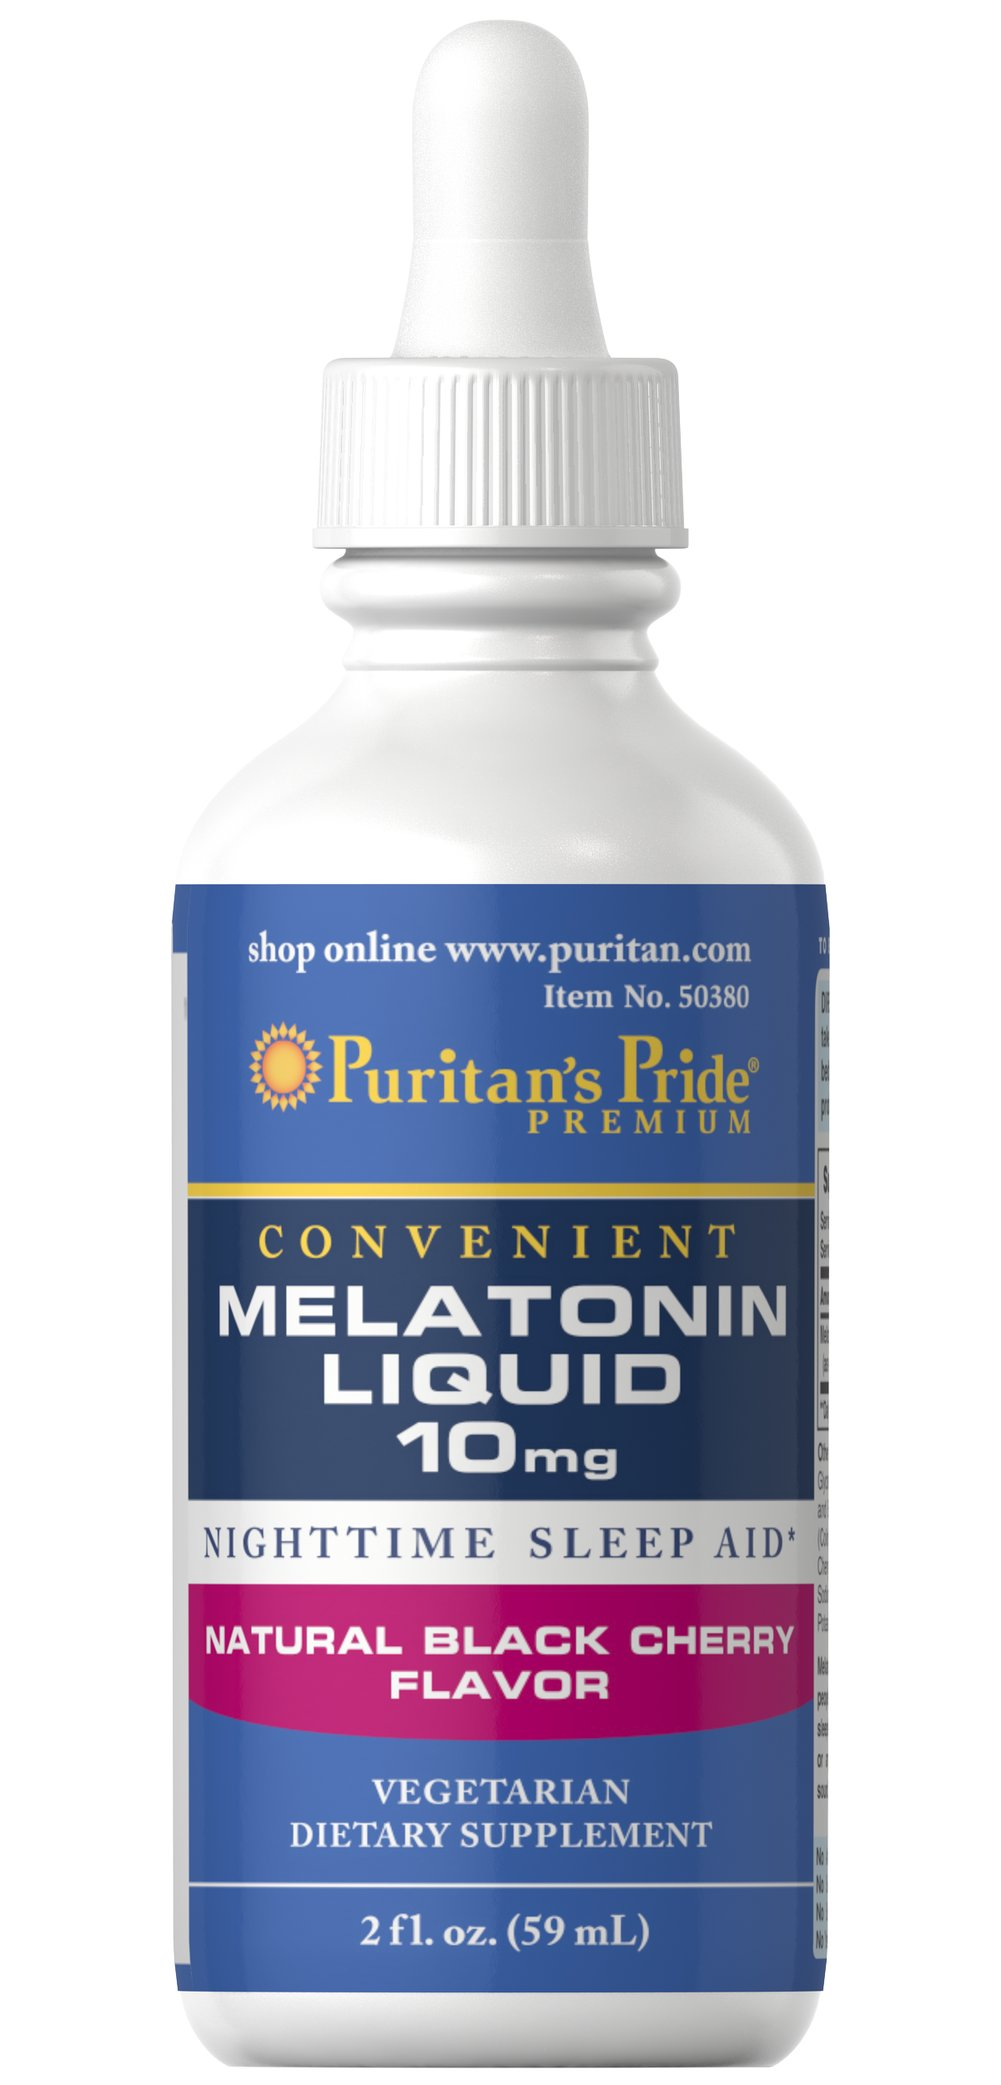 Melatonin Liquid 10 mg Black Cherry Flavor